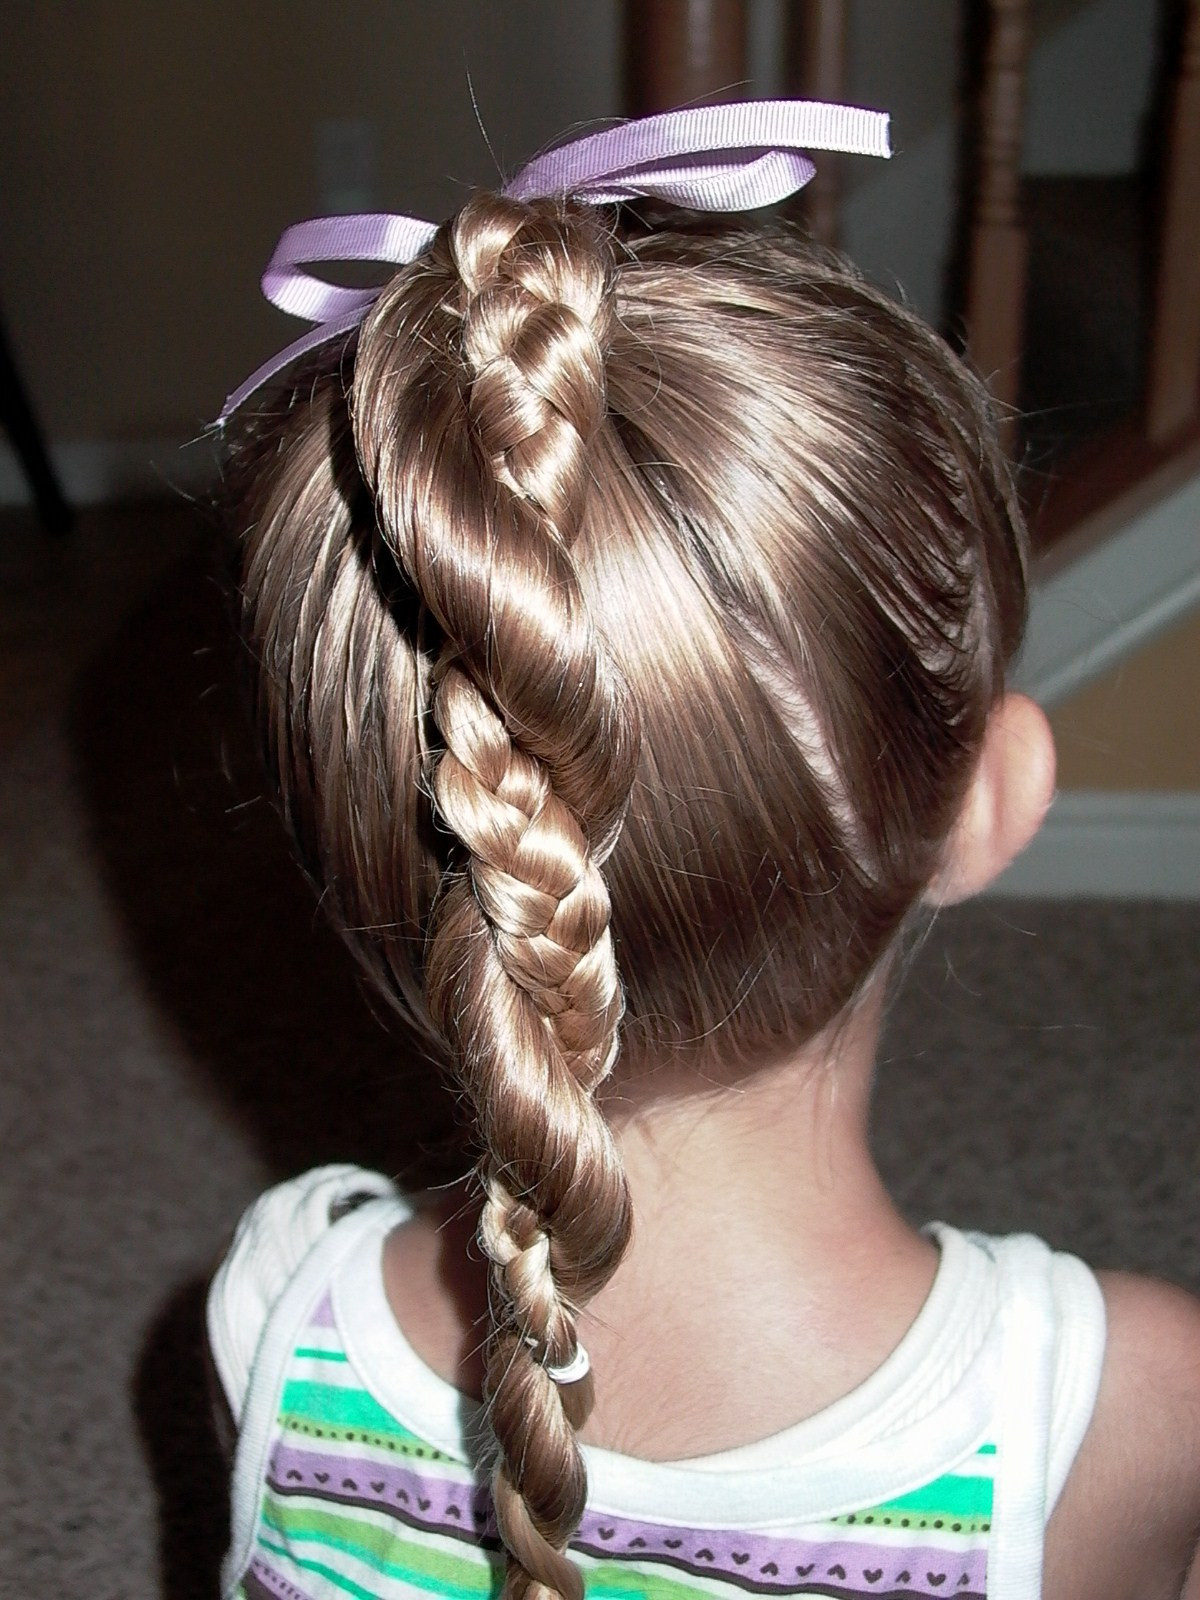 Best ideas about Easy Little Girl Hairstyles . Save or Pin Little Girl s Hairstyles Easy Twist Around Braided Now.